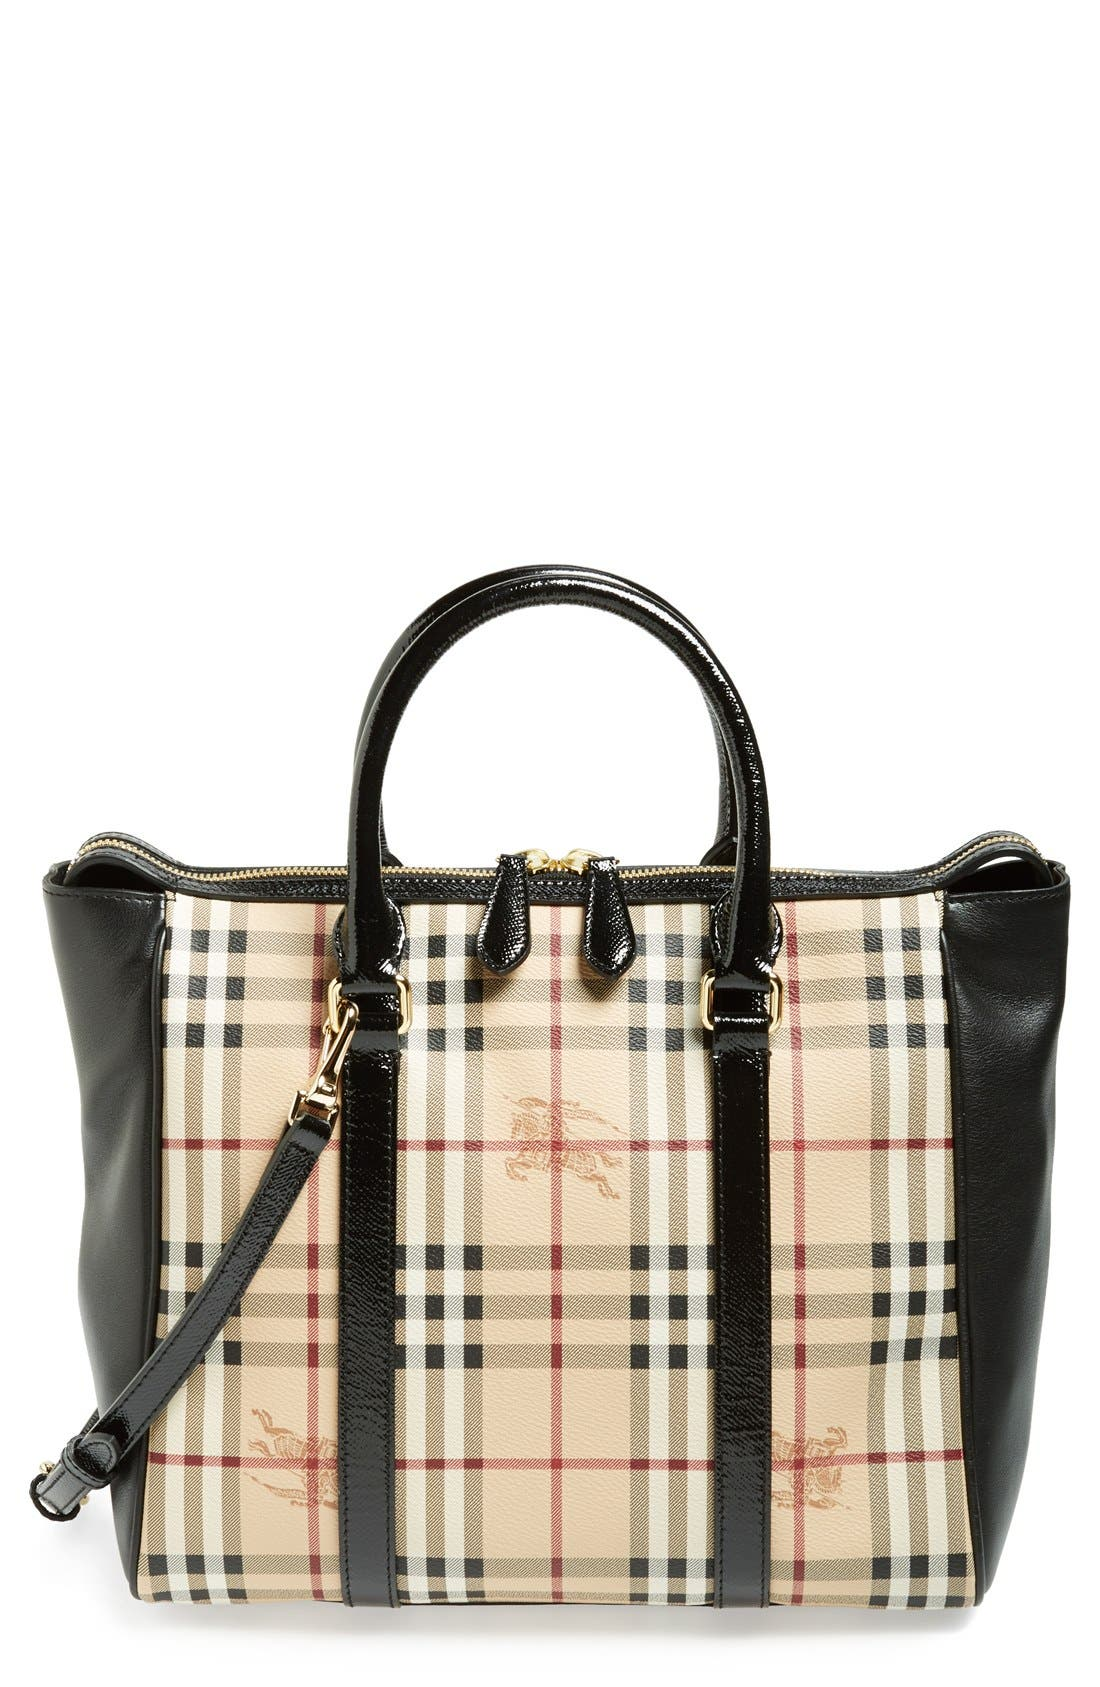 Main Image - Burberry 'Chattom' Logo Tote